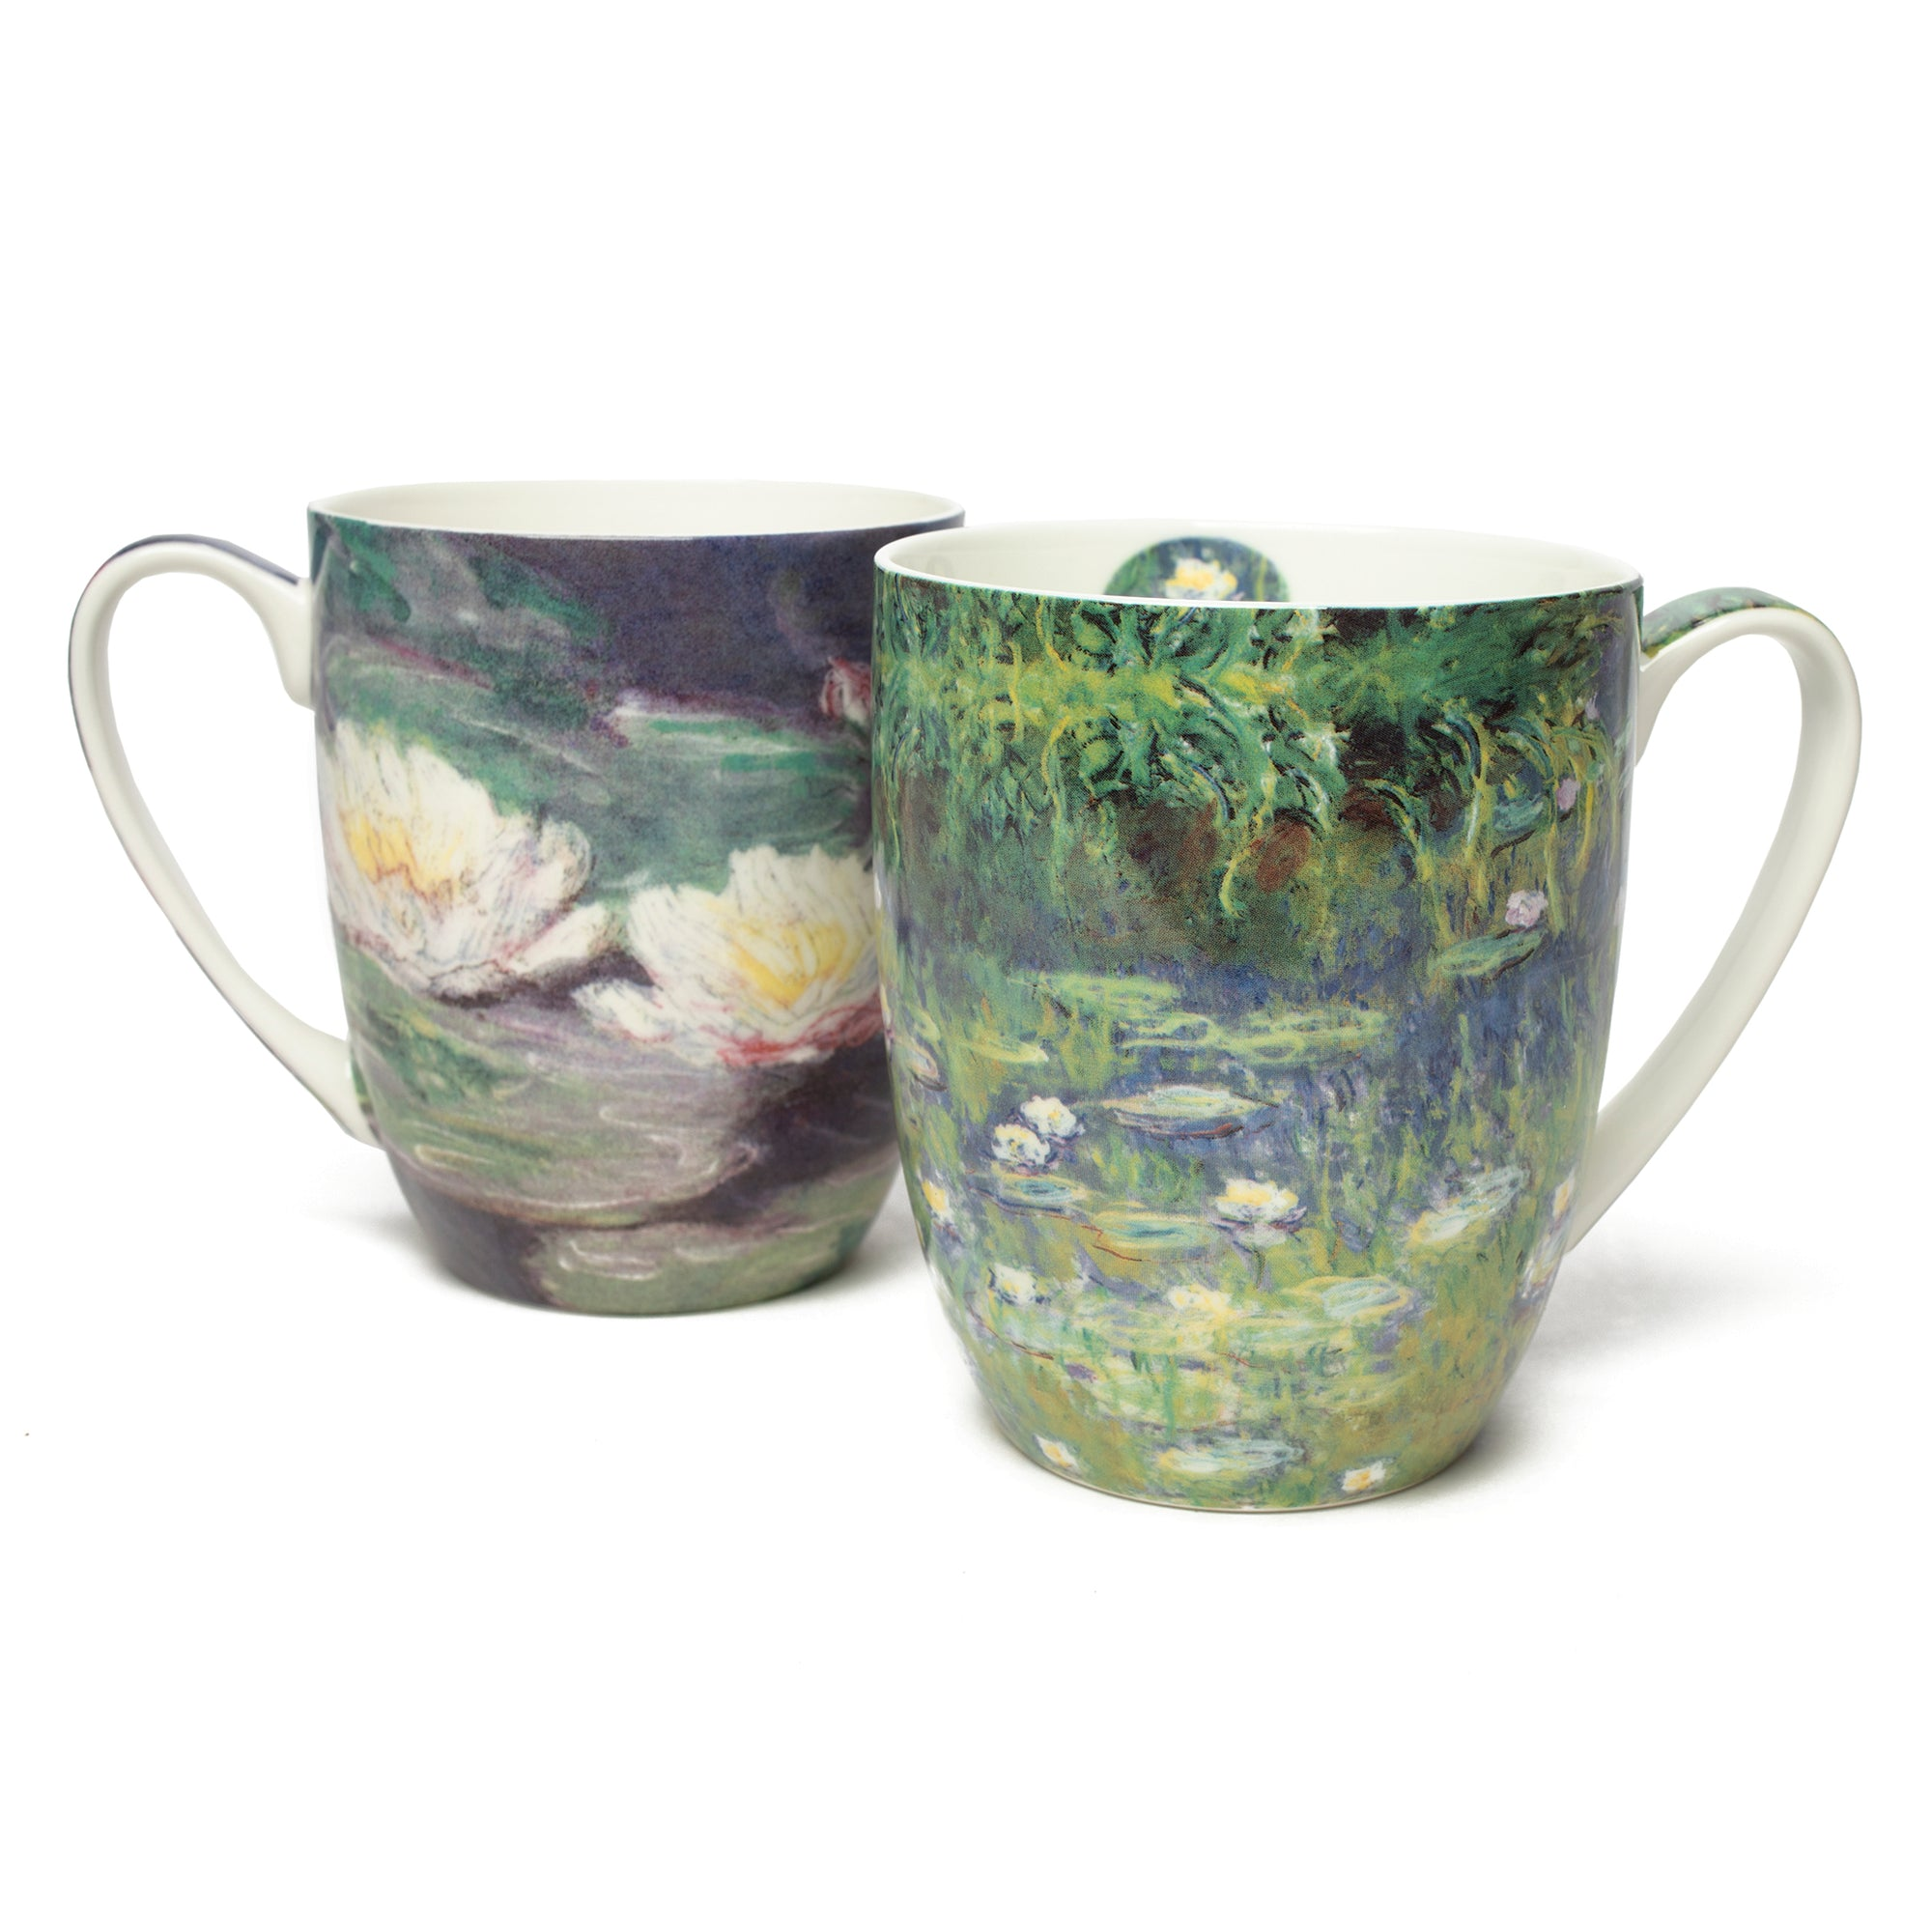 Pair of Fine Bone China Mugs featuring Monet's <i>Water Lilies</i>